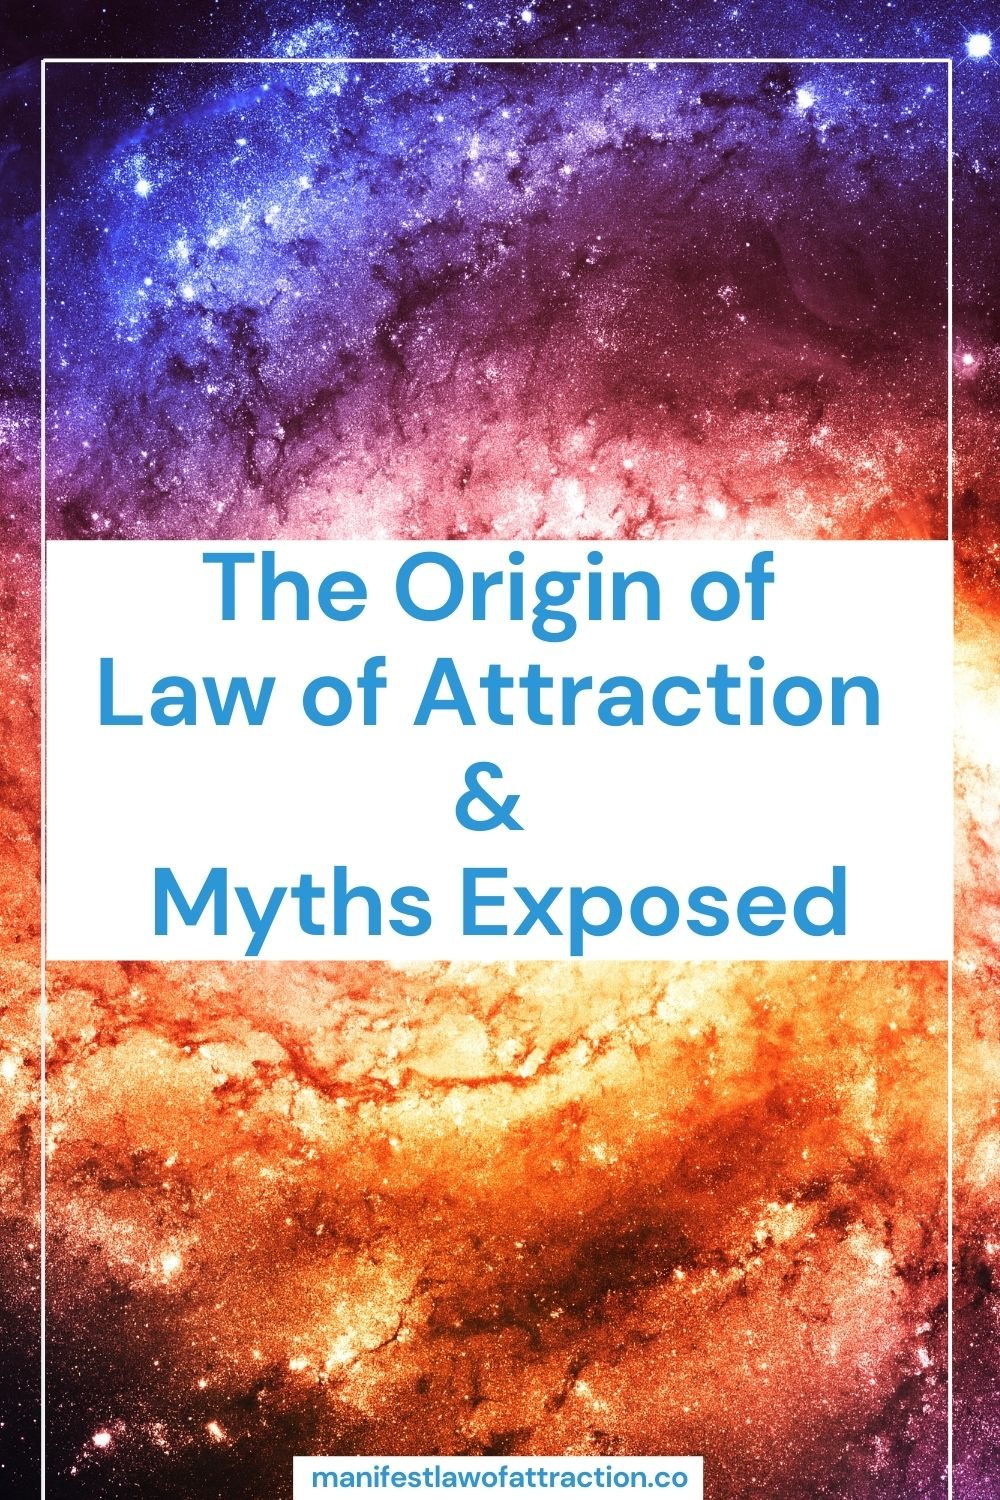 The Origin of Law of Attraction & Myths Exposed 1